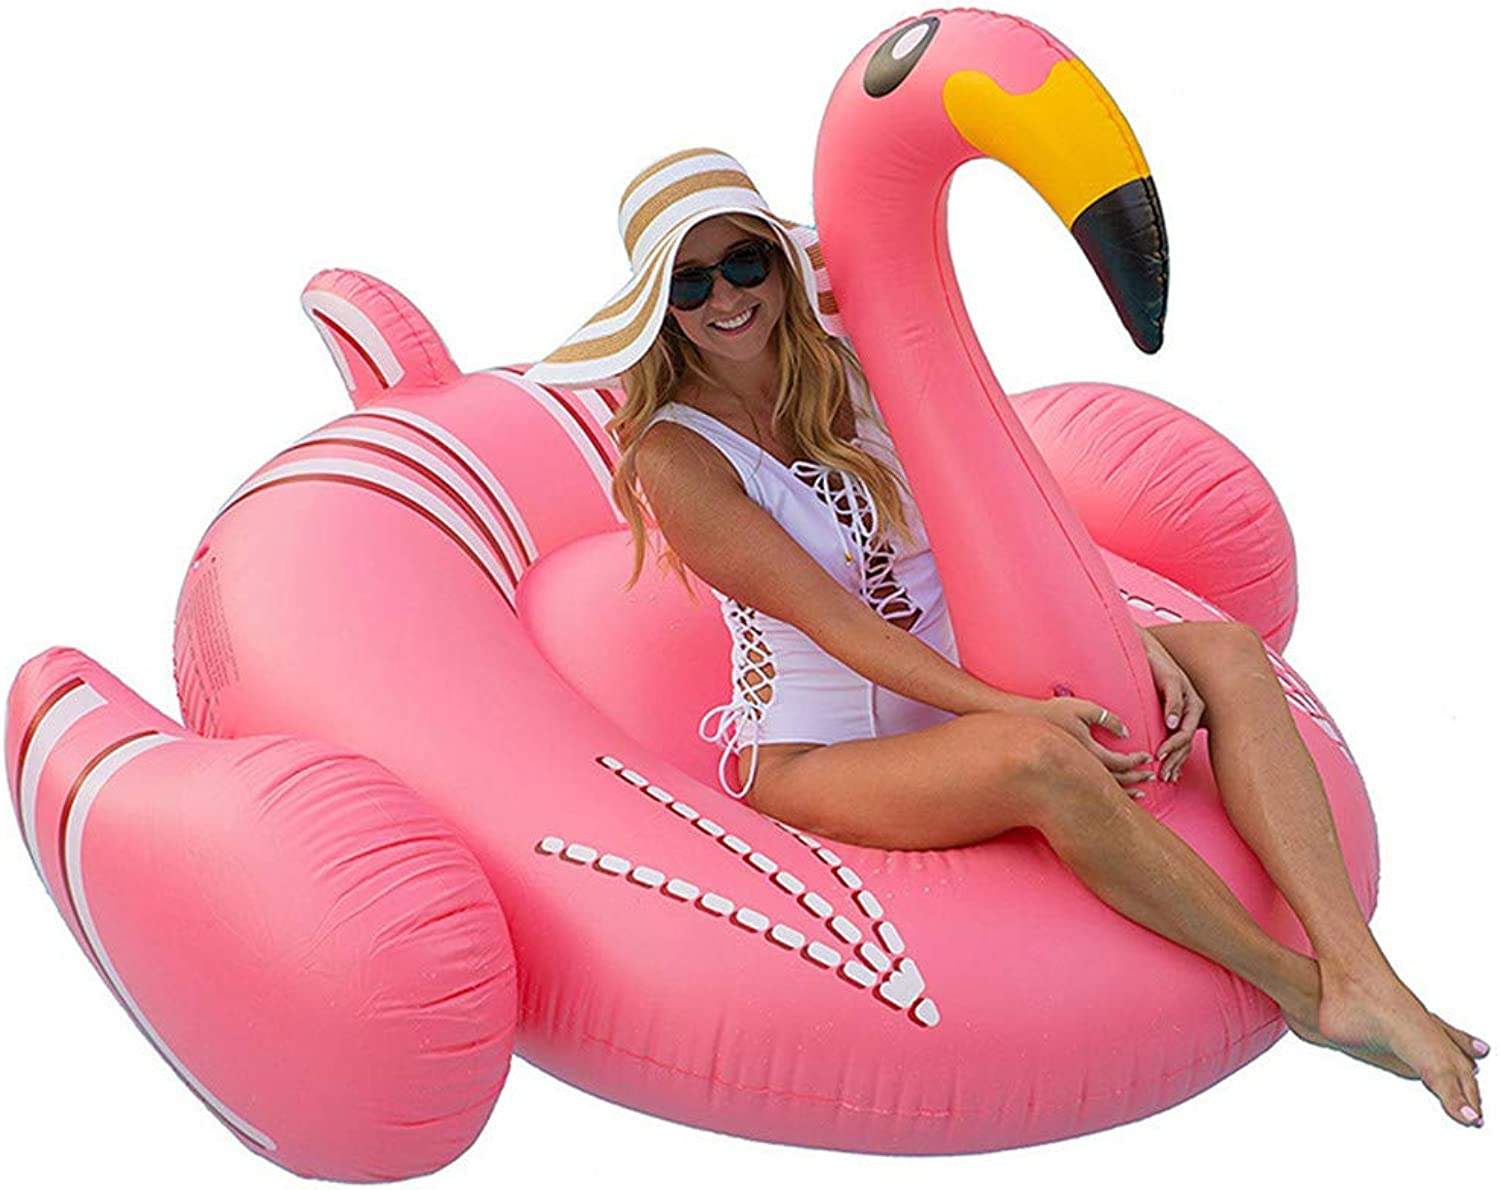 W.WMVN Inflatable floating bed, pontoon float, swim ring, flamingo mount floating beach vacation photo props floating row